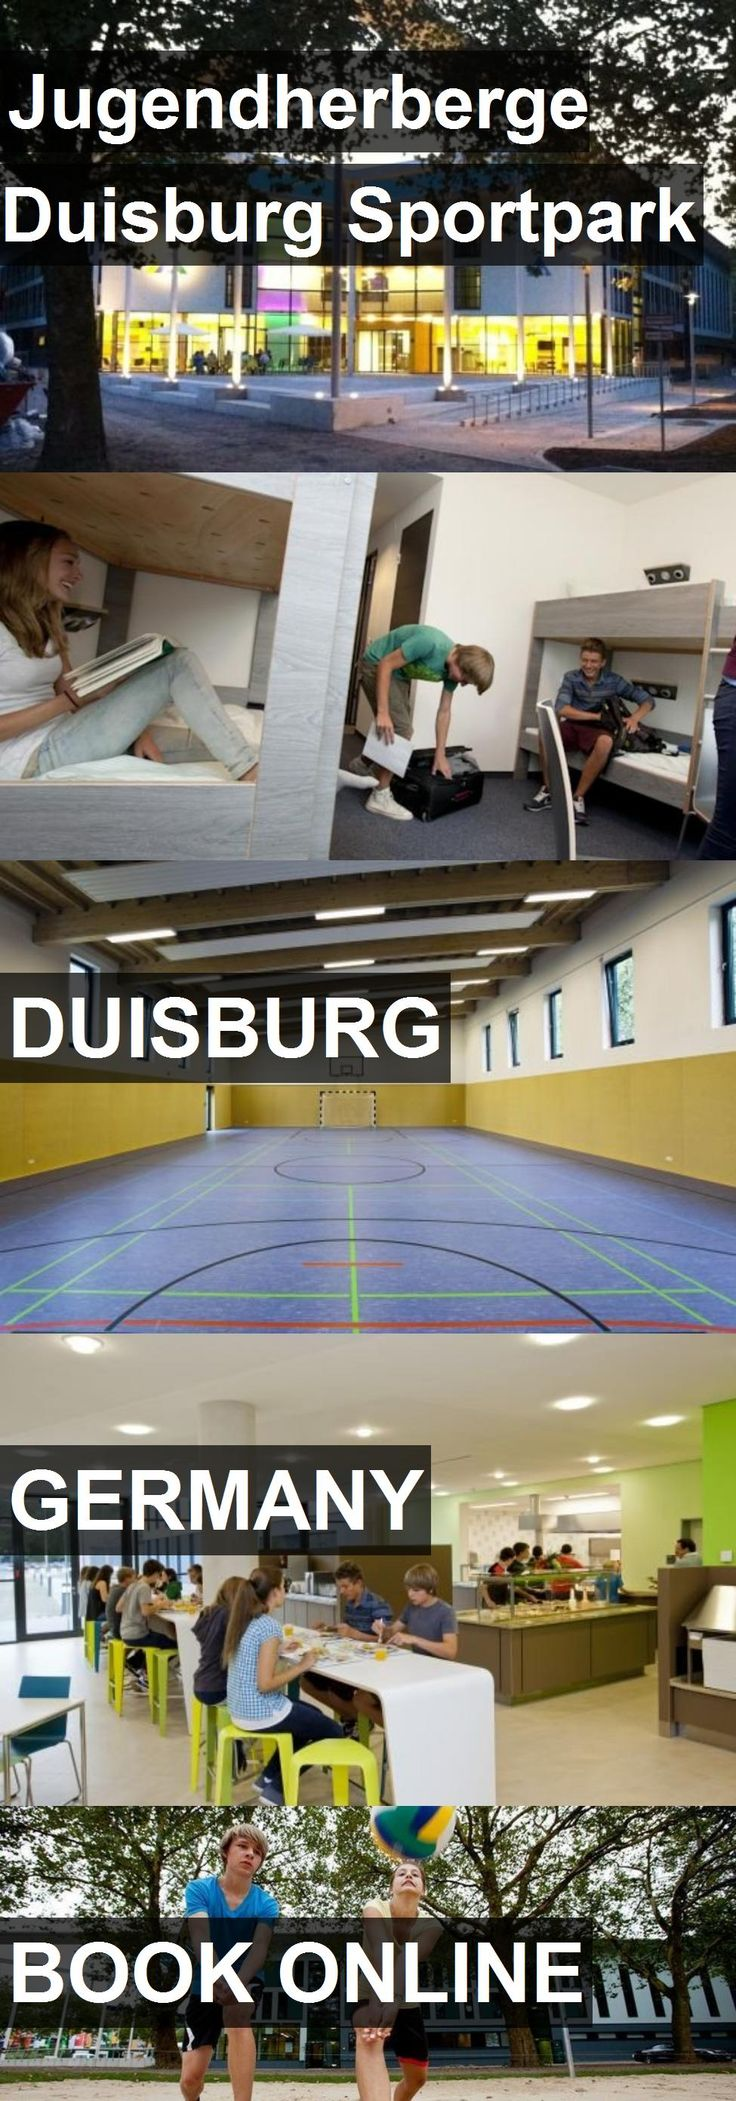 Hotel Jugendherberge Duisburg Sportpark in Duisburg, Germany. For more information, photos, reviews and best prices please follow the link. #Germany #Duisburg #travel #vacation #hotel